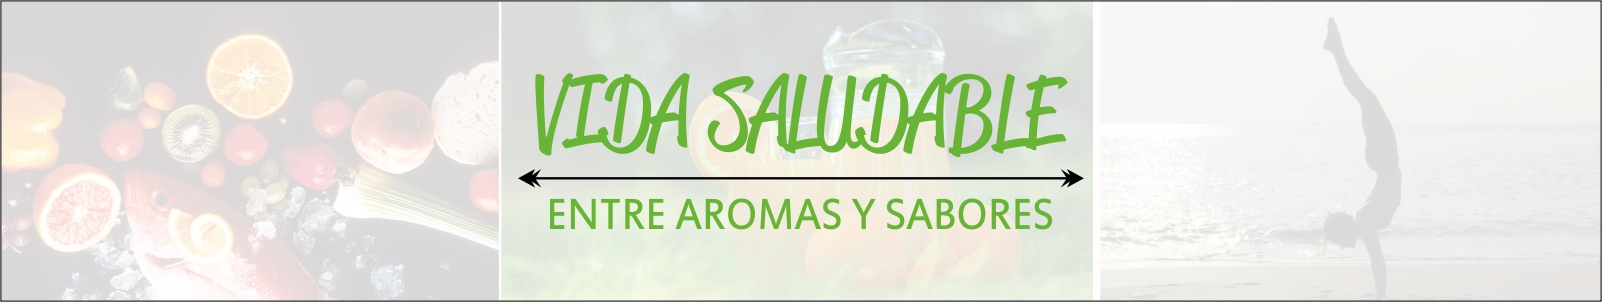 Blog Vida Saludable